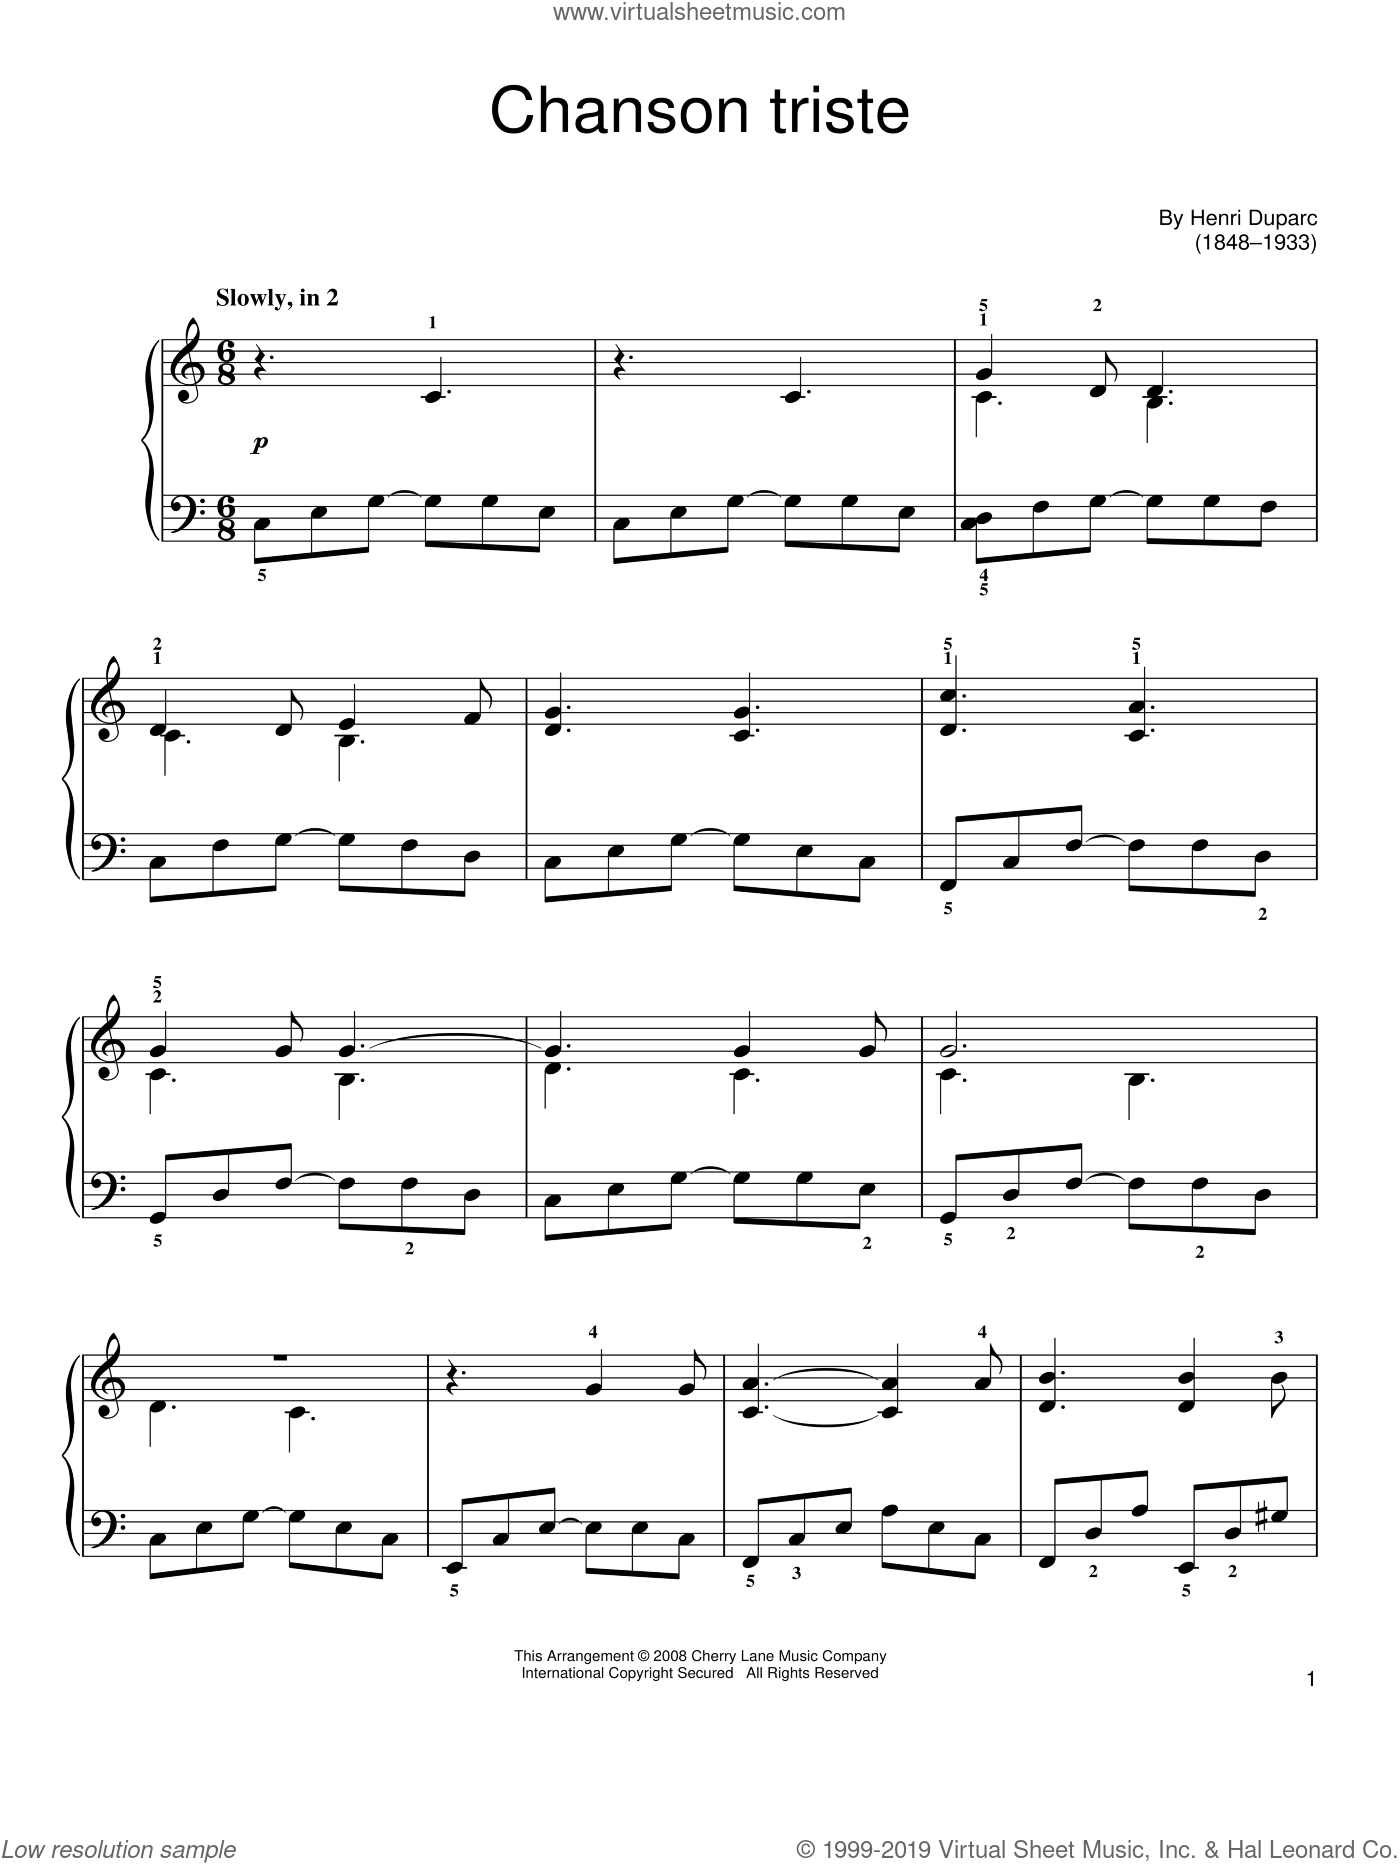 Chanson Triste sheet music for piano solo by Henri Duparc, classical score, easy skill level